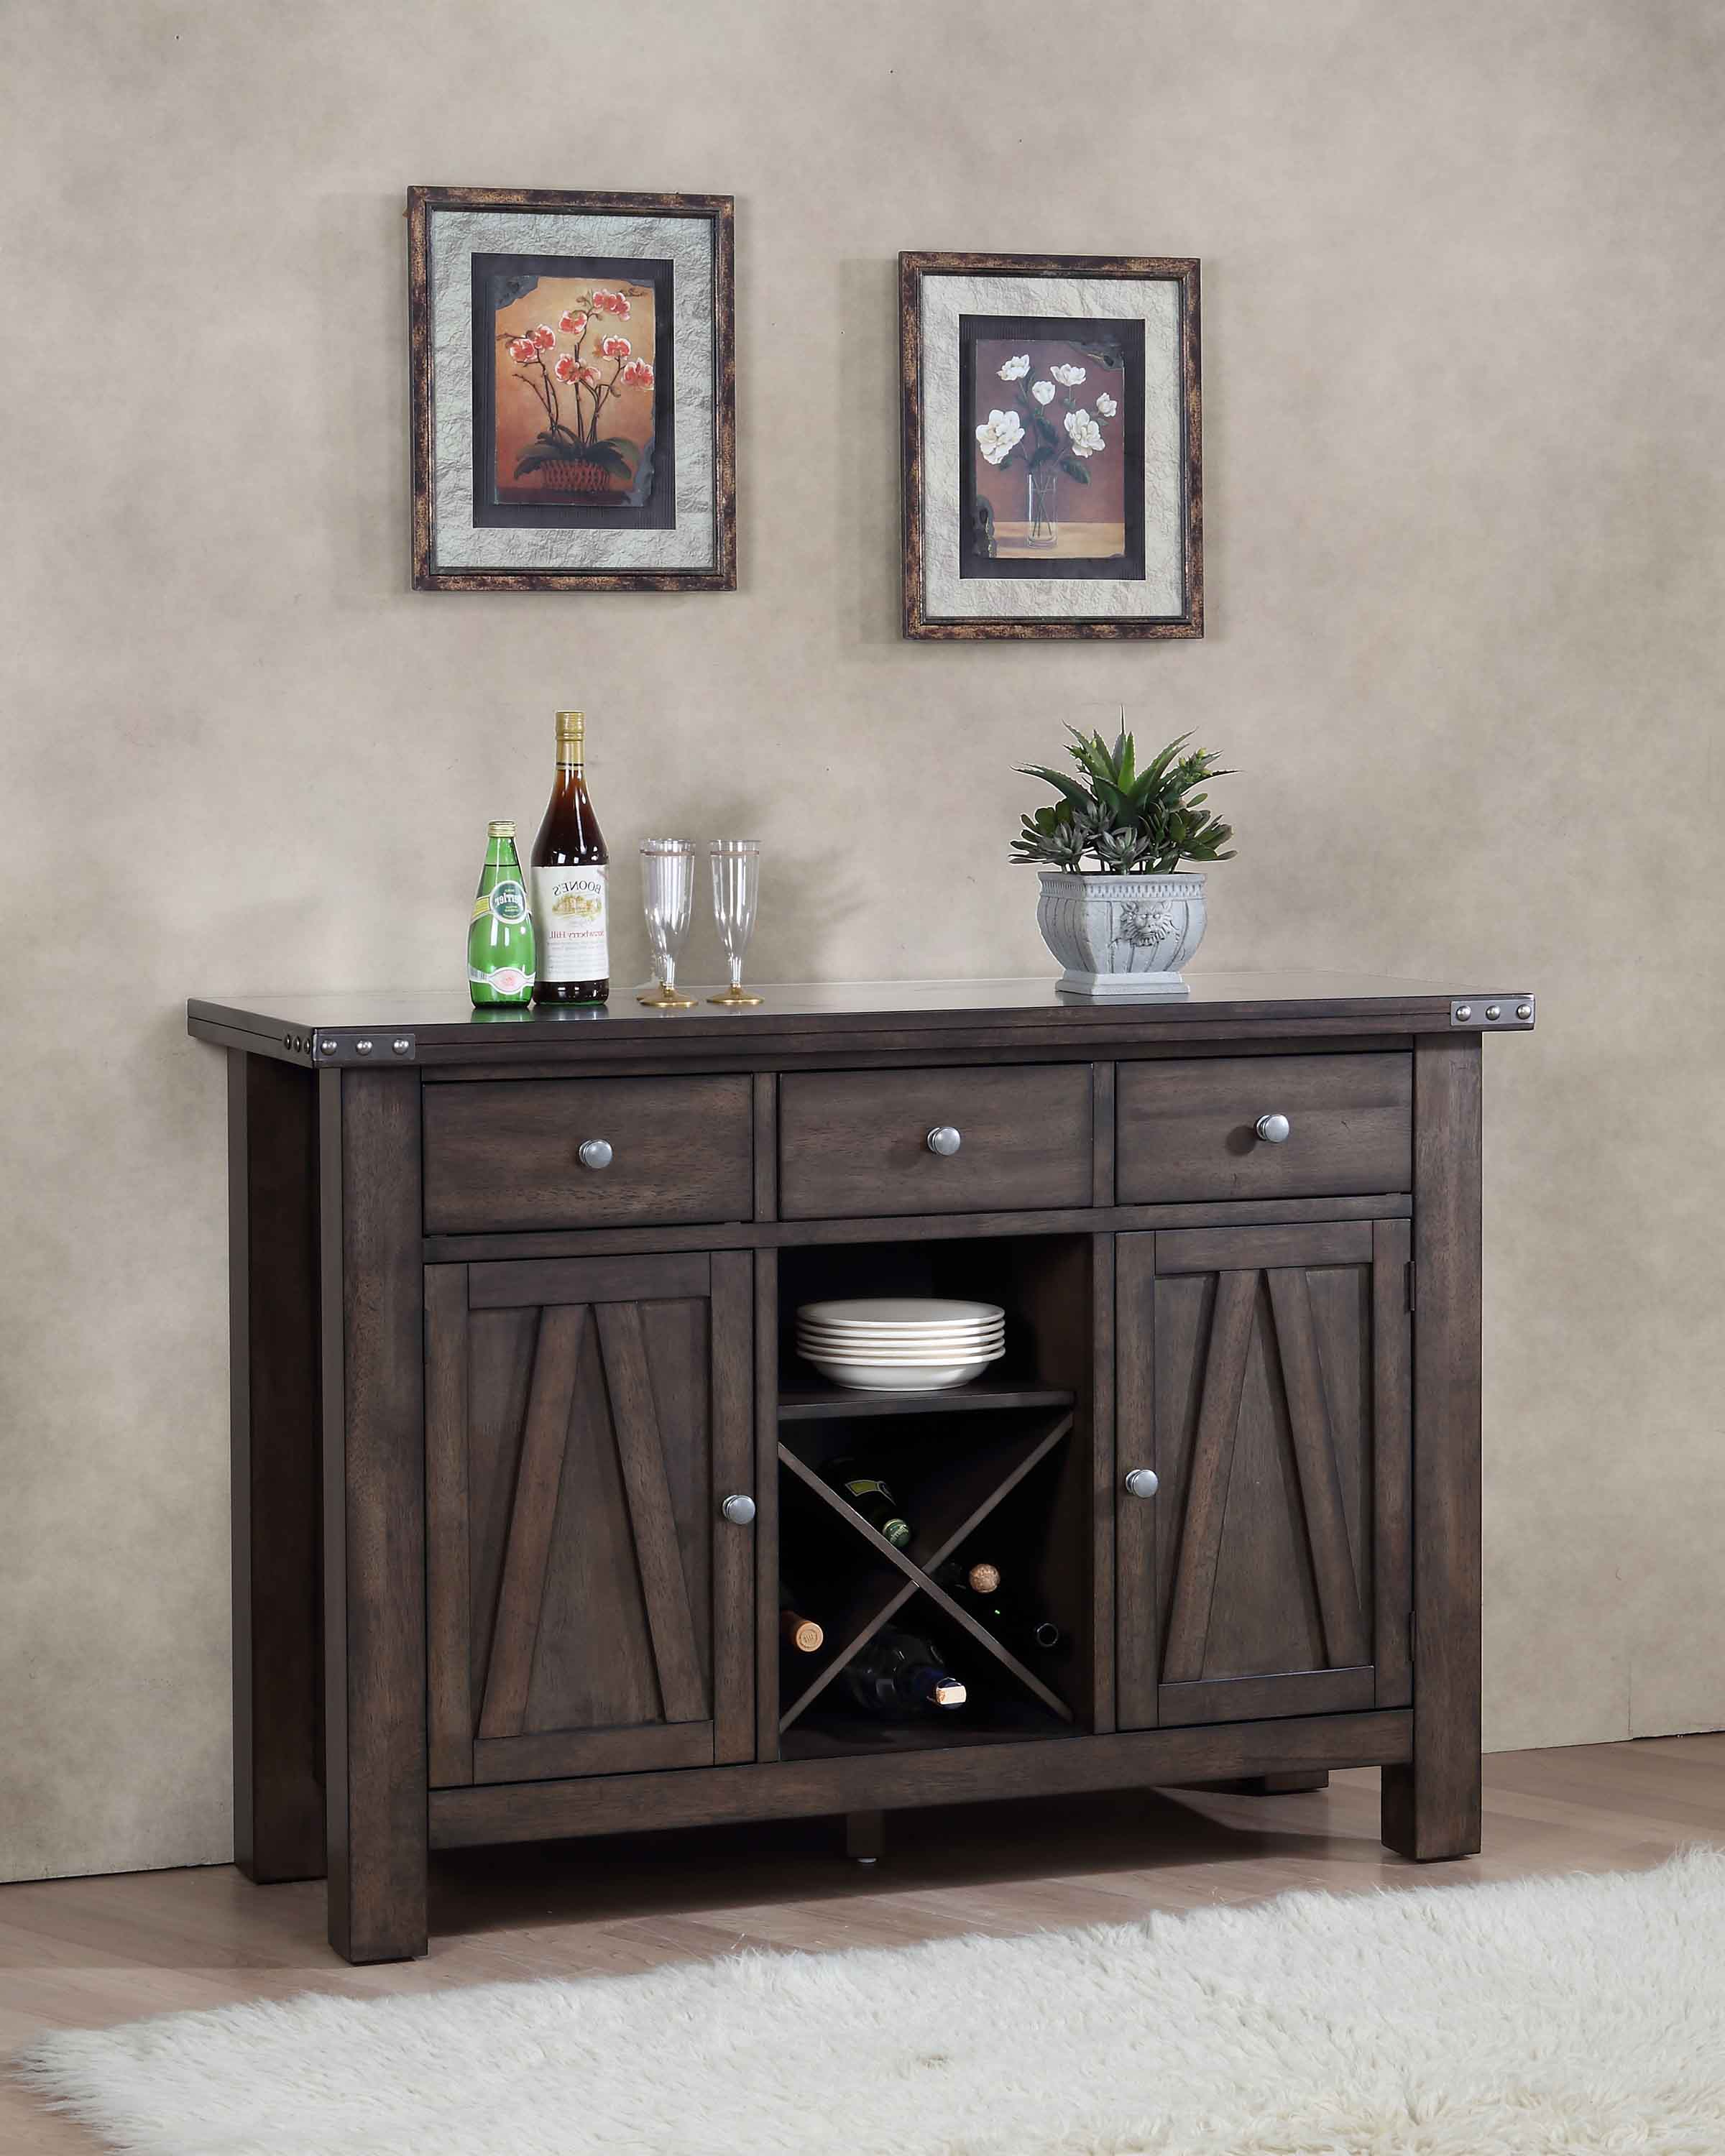 Brown Wood Wine Rack Sideboard Buffet Server Storage Cabinet With Drawers, Shelf & Doors by unknown